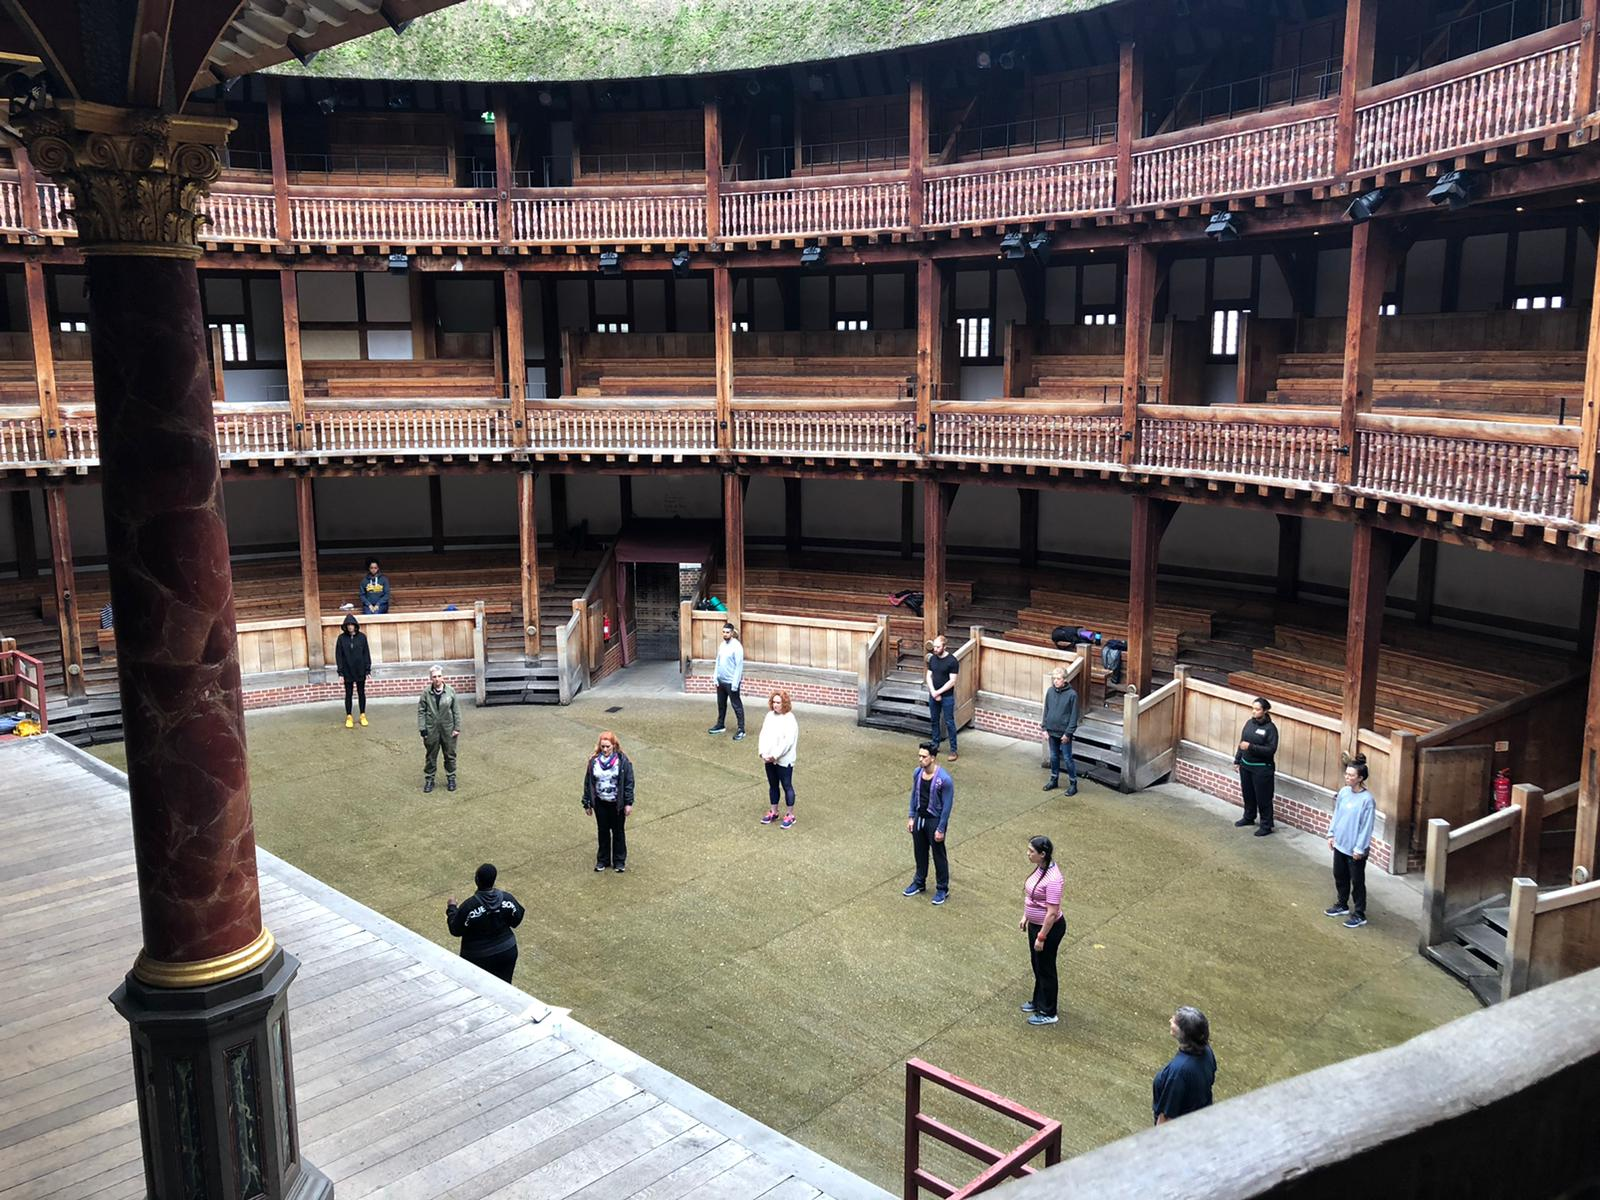 People at The Globe theatre